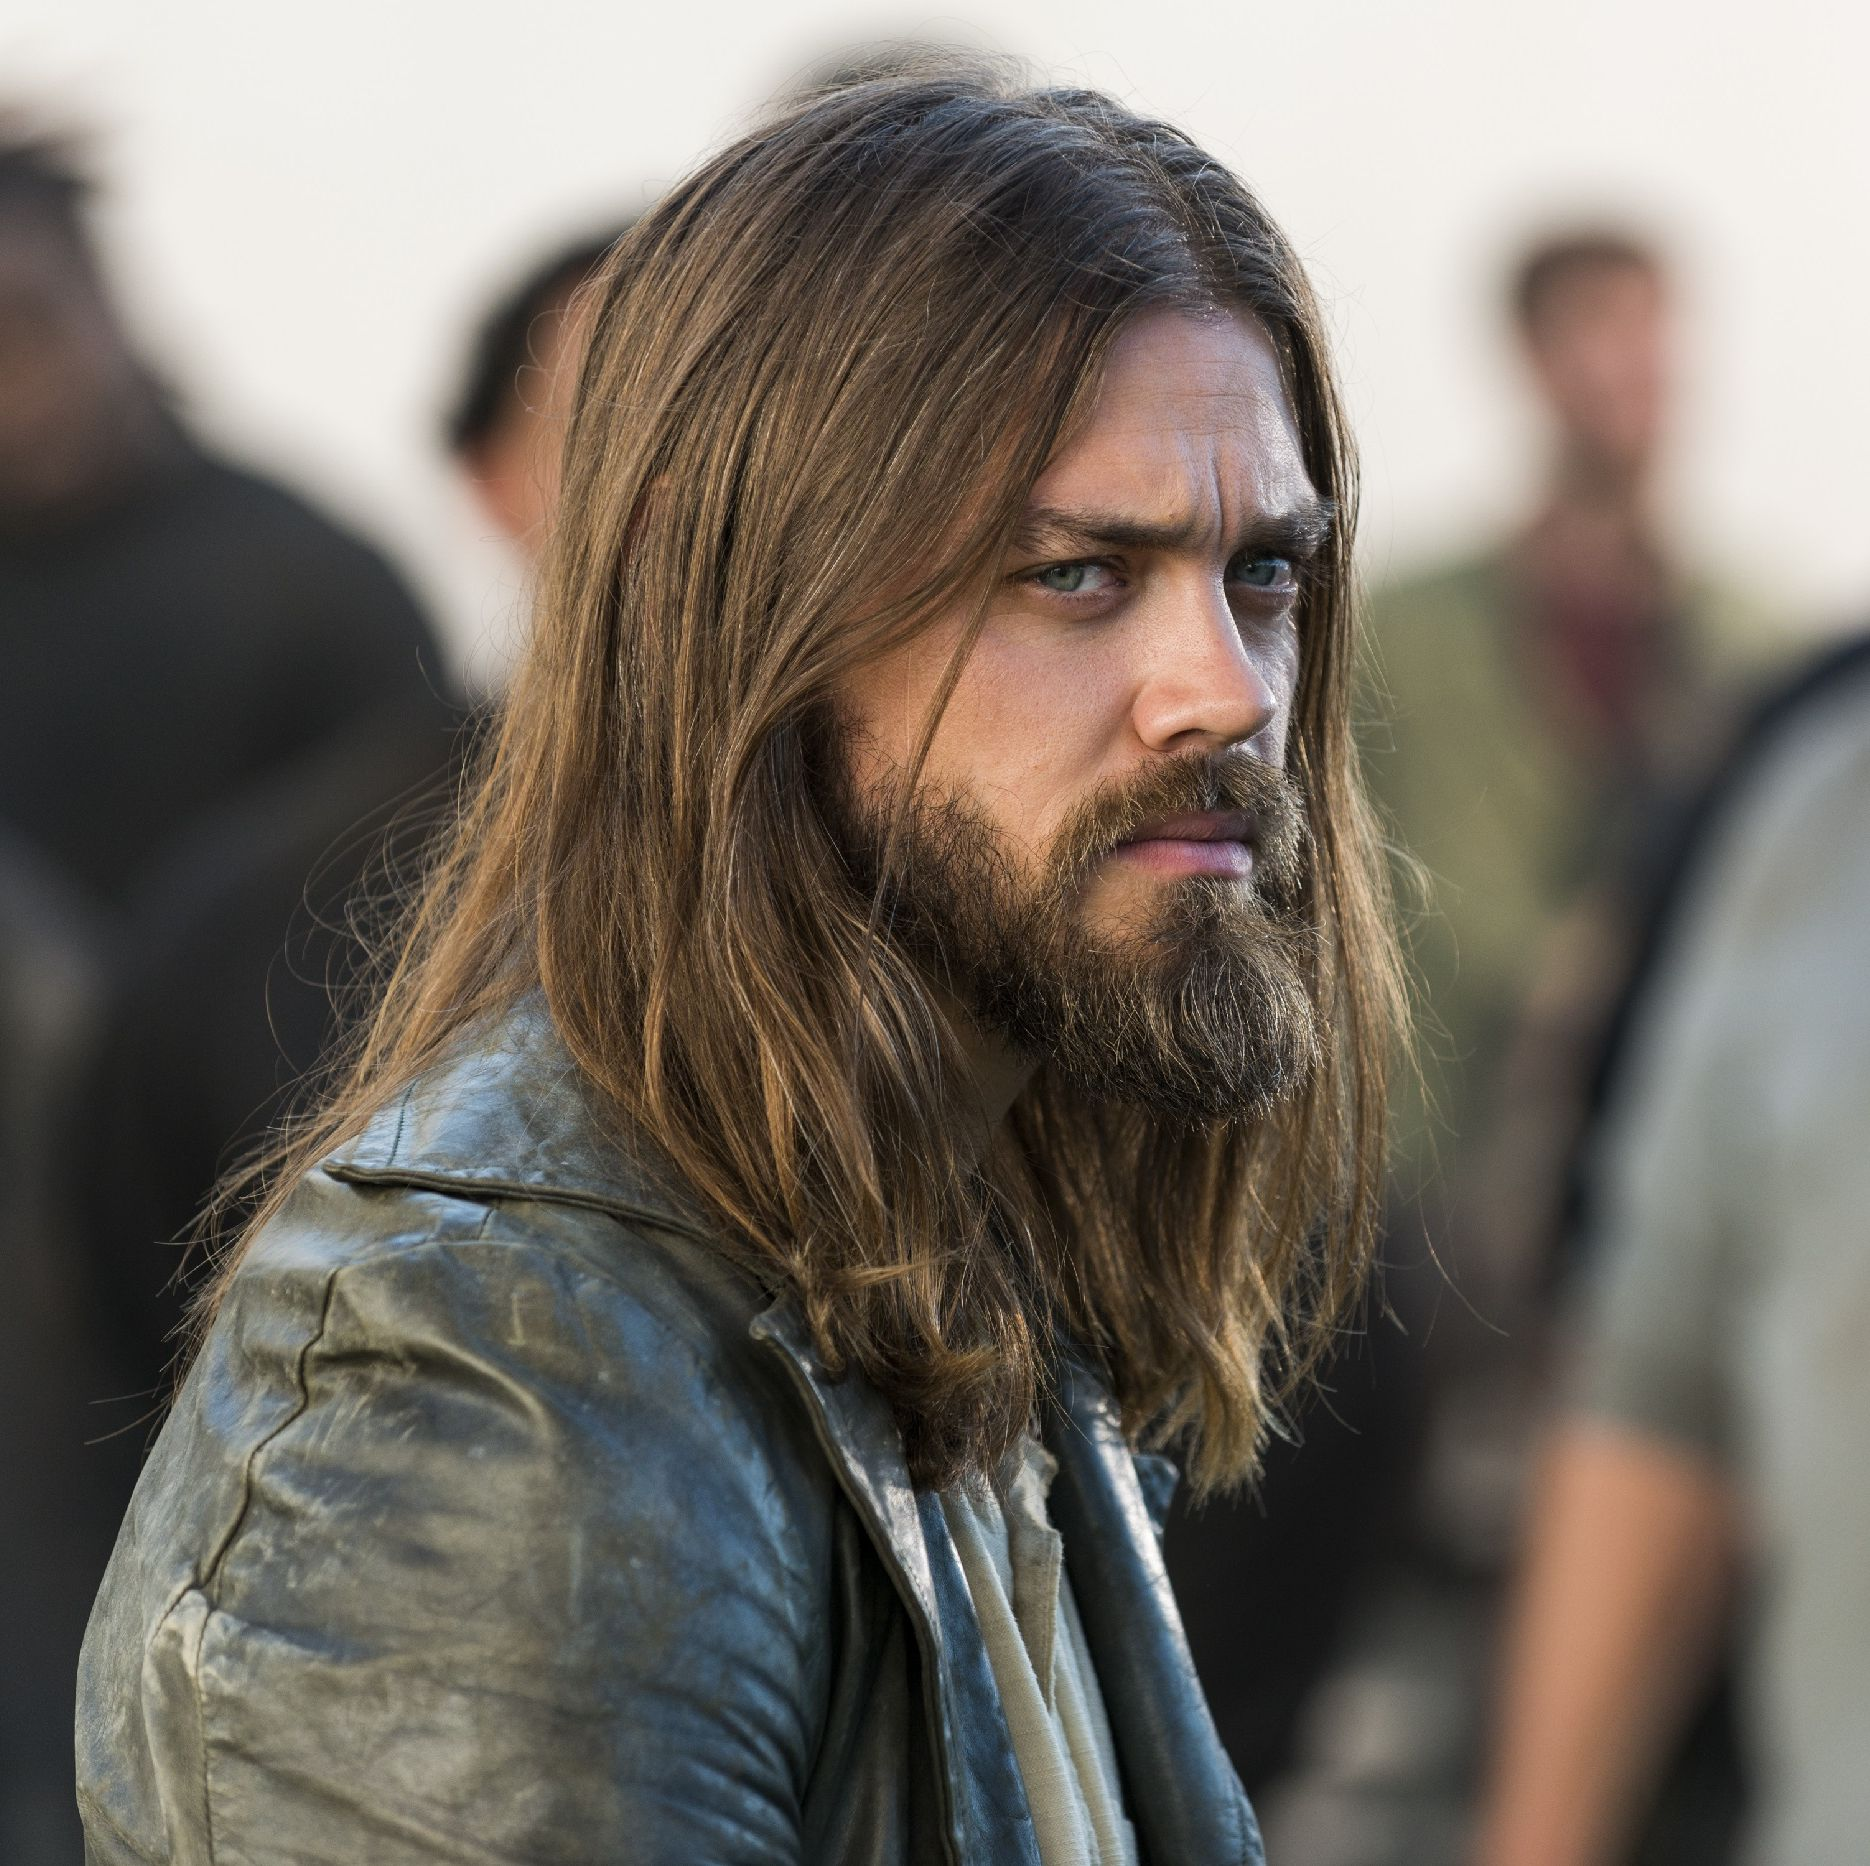 Walking Dead's Tom Payne replaces Iron Fist's Finn Jones in TV show Prodigal Son after 4 days